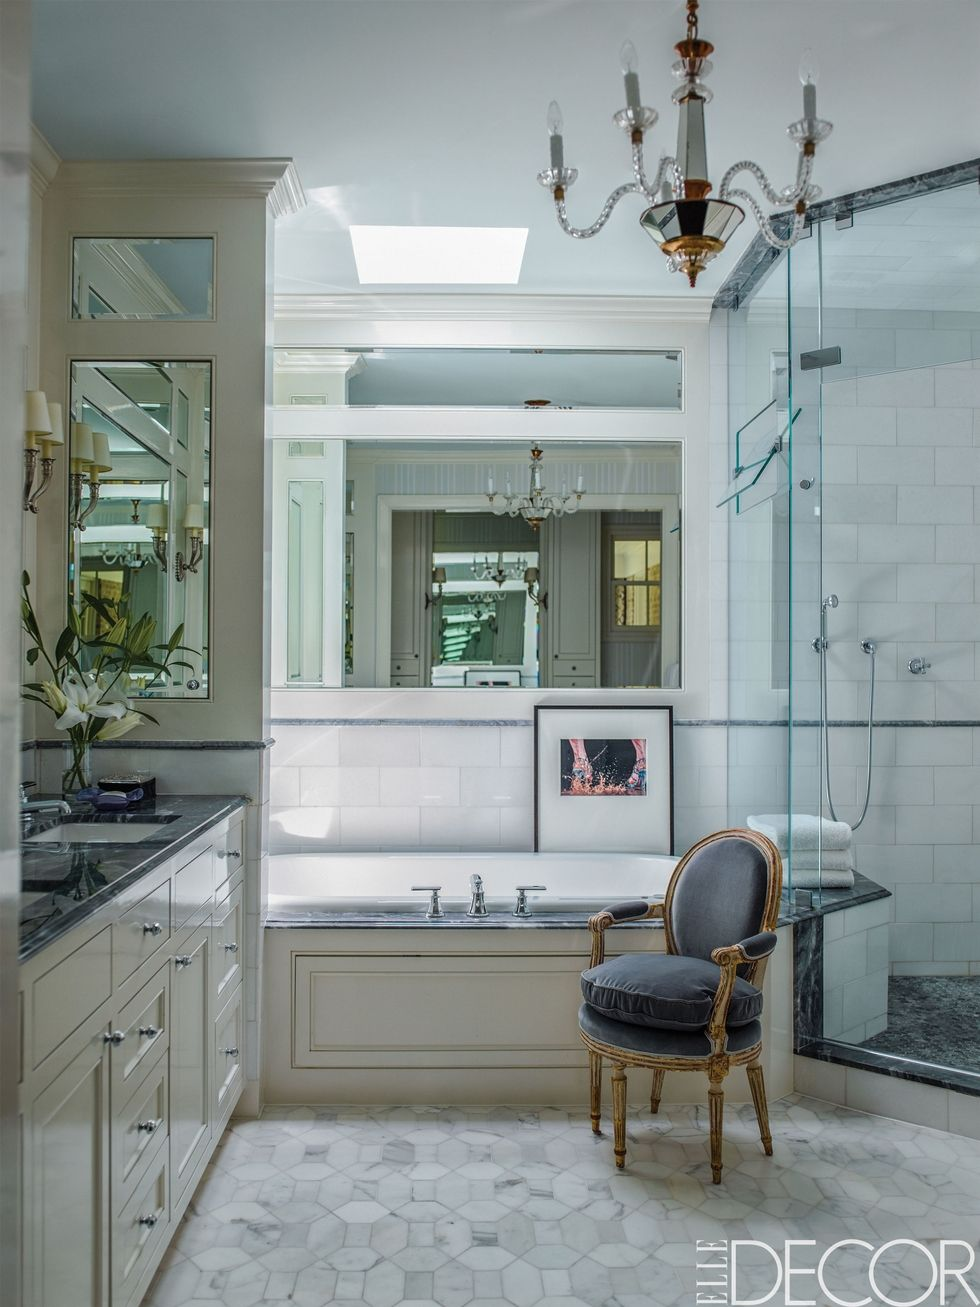 The Best Bathroom Lighting Ideas For Every Design Style ➤ To see more news about Luxury Bathrooms in the world visit us at http://luxurybathrooms.eu/ #luxurybathrooms #interiordesign #homedecor @BathroomsLuxury @bocadolobo @delightfulll @brabbu @essentialhomeeu @circudesign @mvalentinabath @luxxu @covethouse_ best bathroom lighting ideas The Best Bathroom Lighting Ideas For Every Design Style – Part 2 The Best Bathroom Lighting Ideas For Every Design Style 45